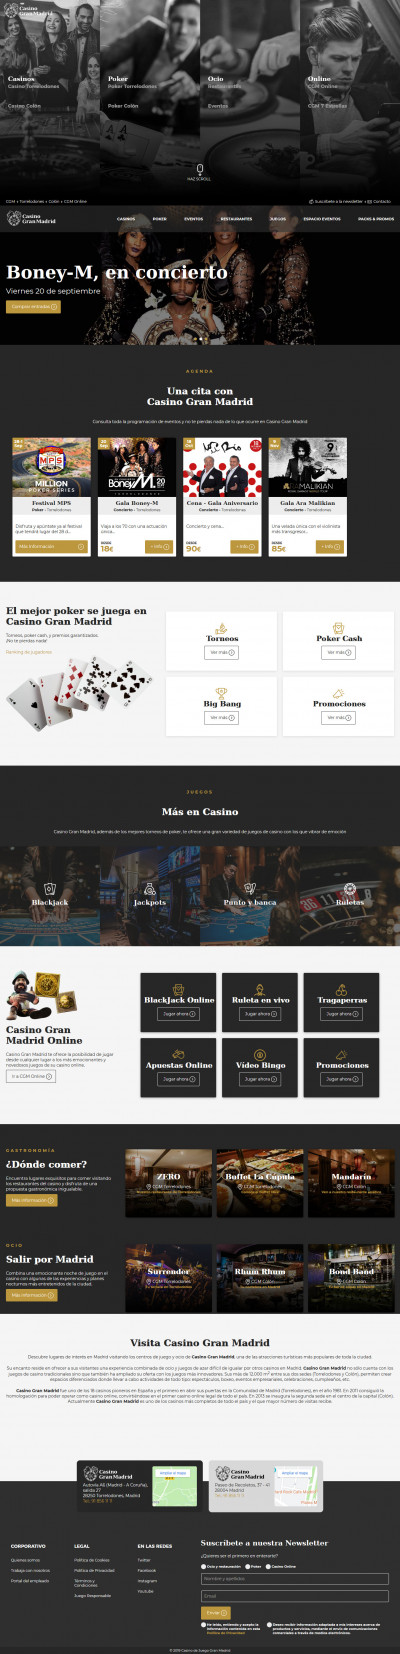 Casino Gran Madrid Screenshot